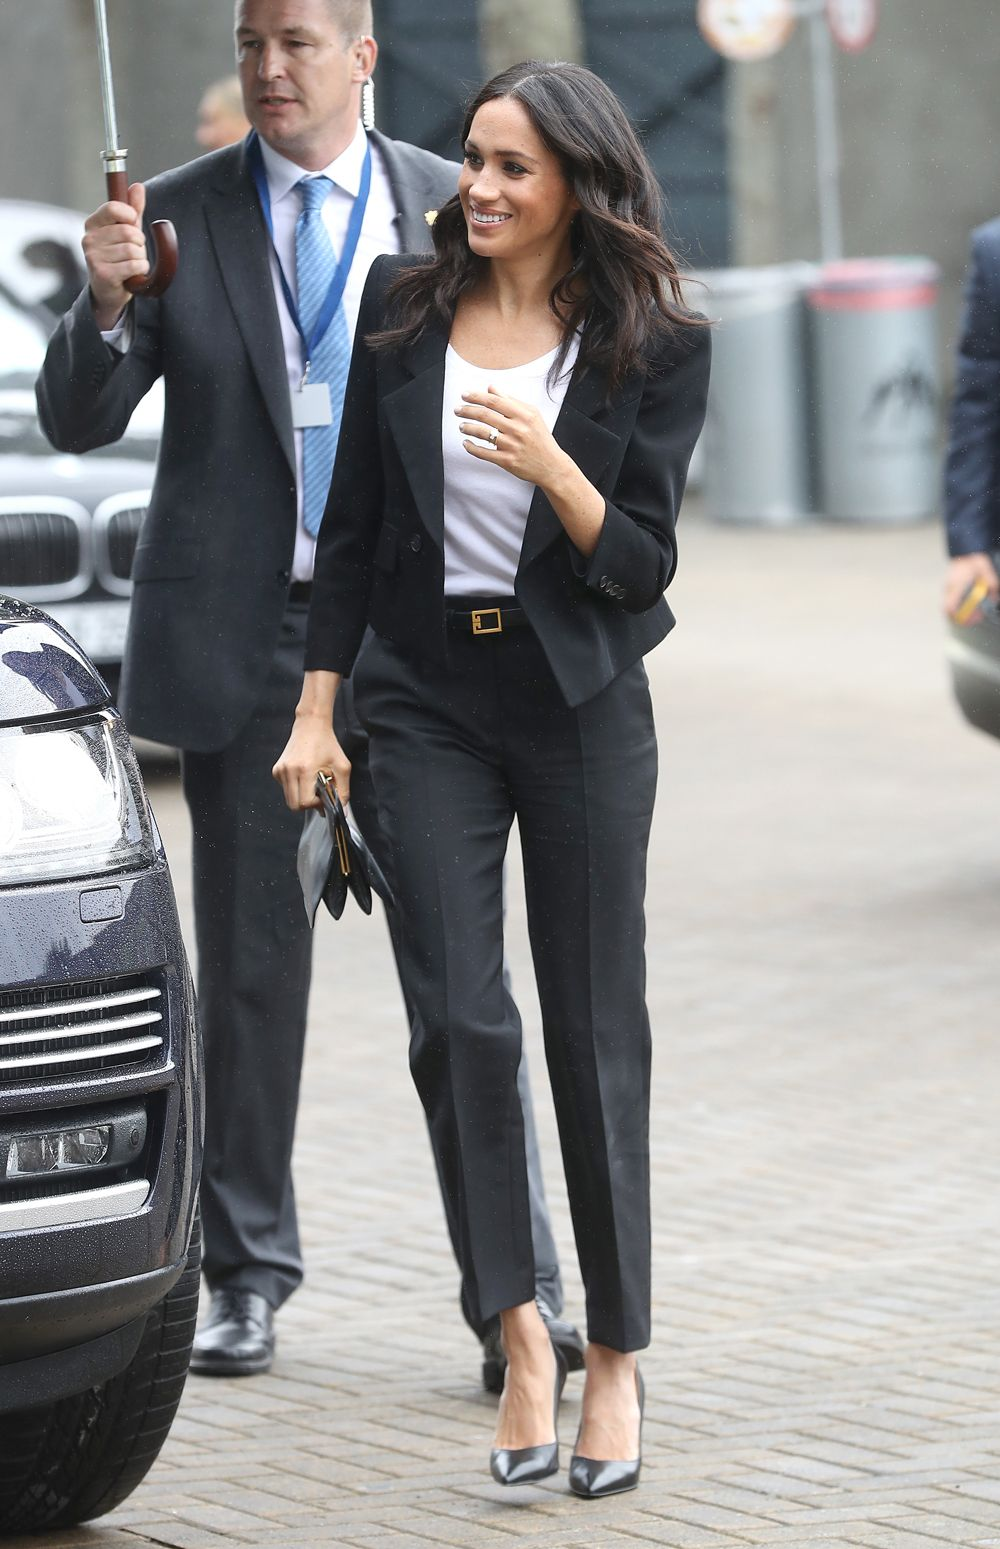 Meghan Markle S Best Style Moments What Meghan Markle Is Wearing